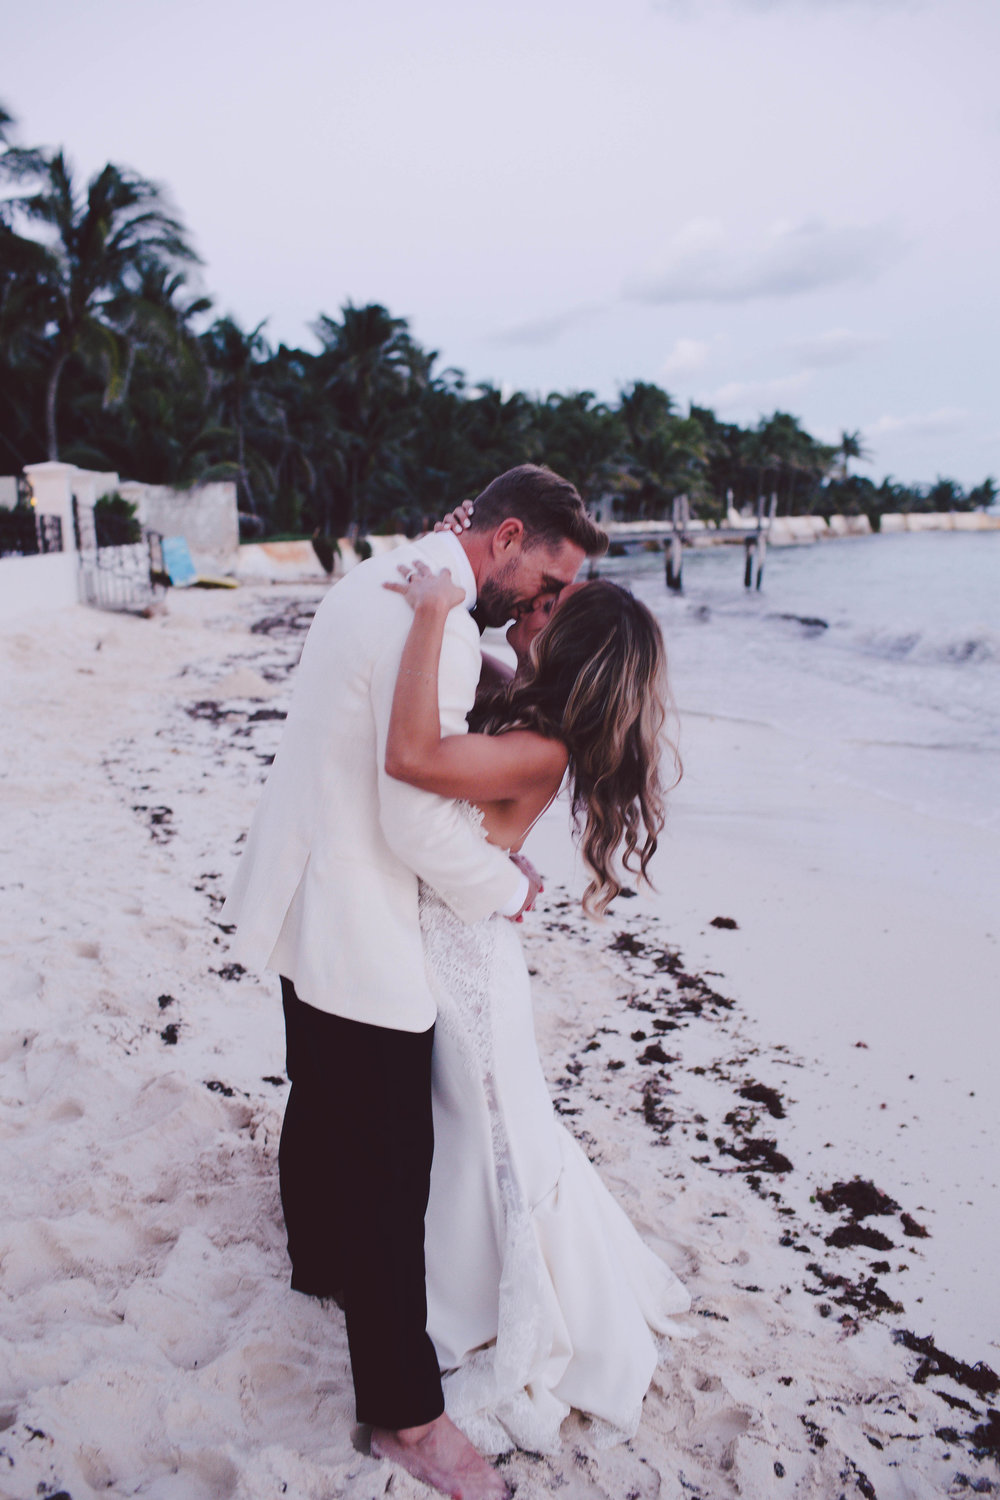 mexico_wedding_cancun_villa_la_joya_evangeline_lane_125.jpg